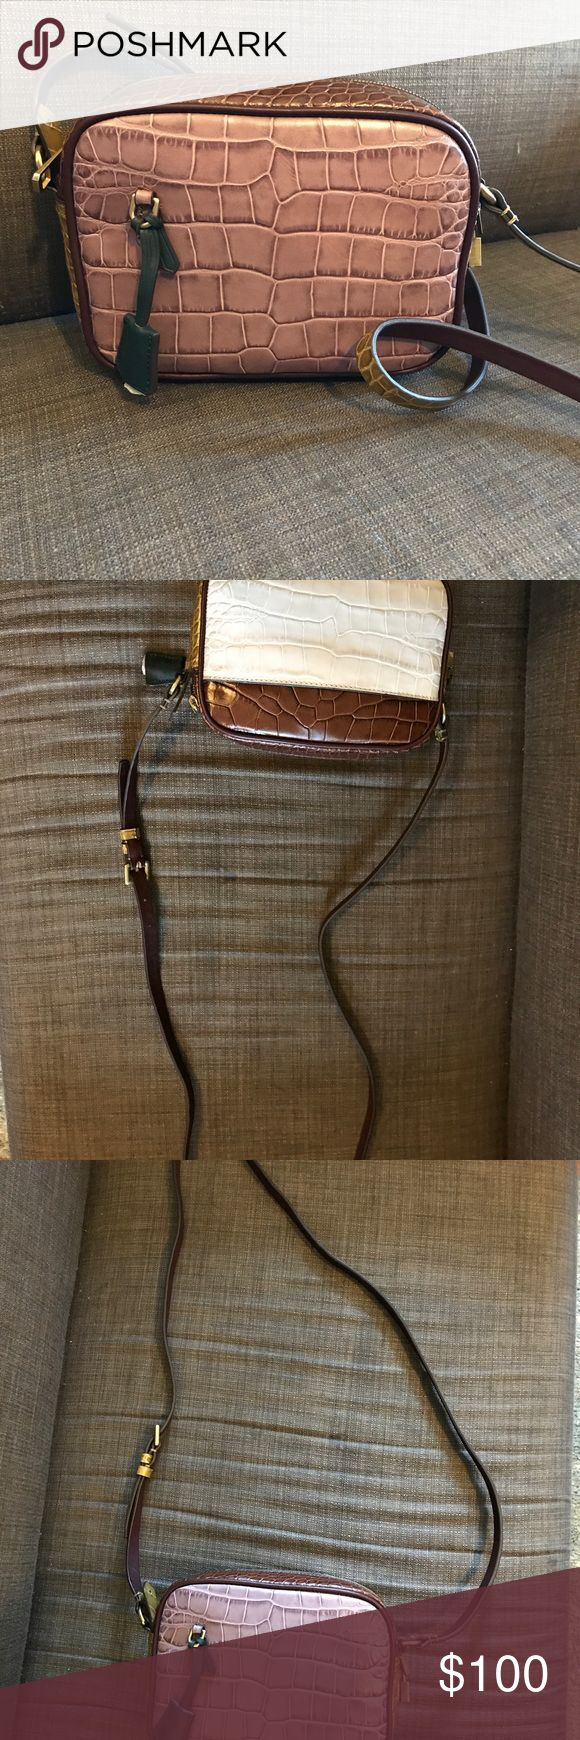 J Crew signet bag Brand new w tags J Crew signet bag...has all tags attached and the dust bag. J. Crew Bags Crossbody Bags